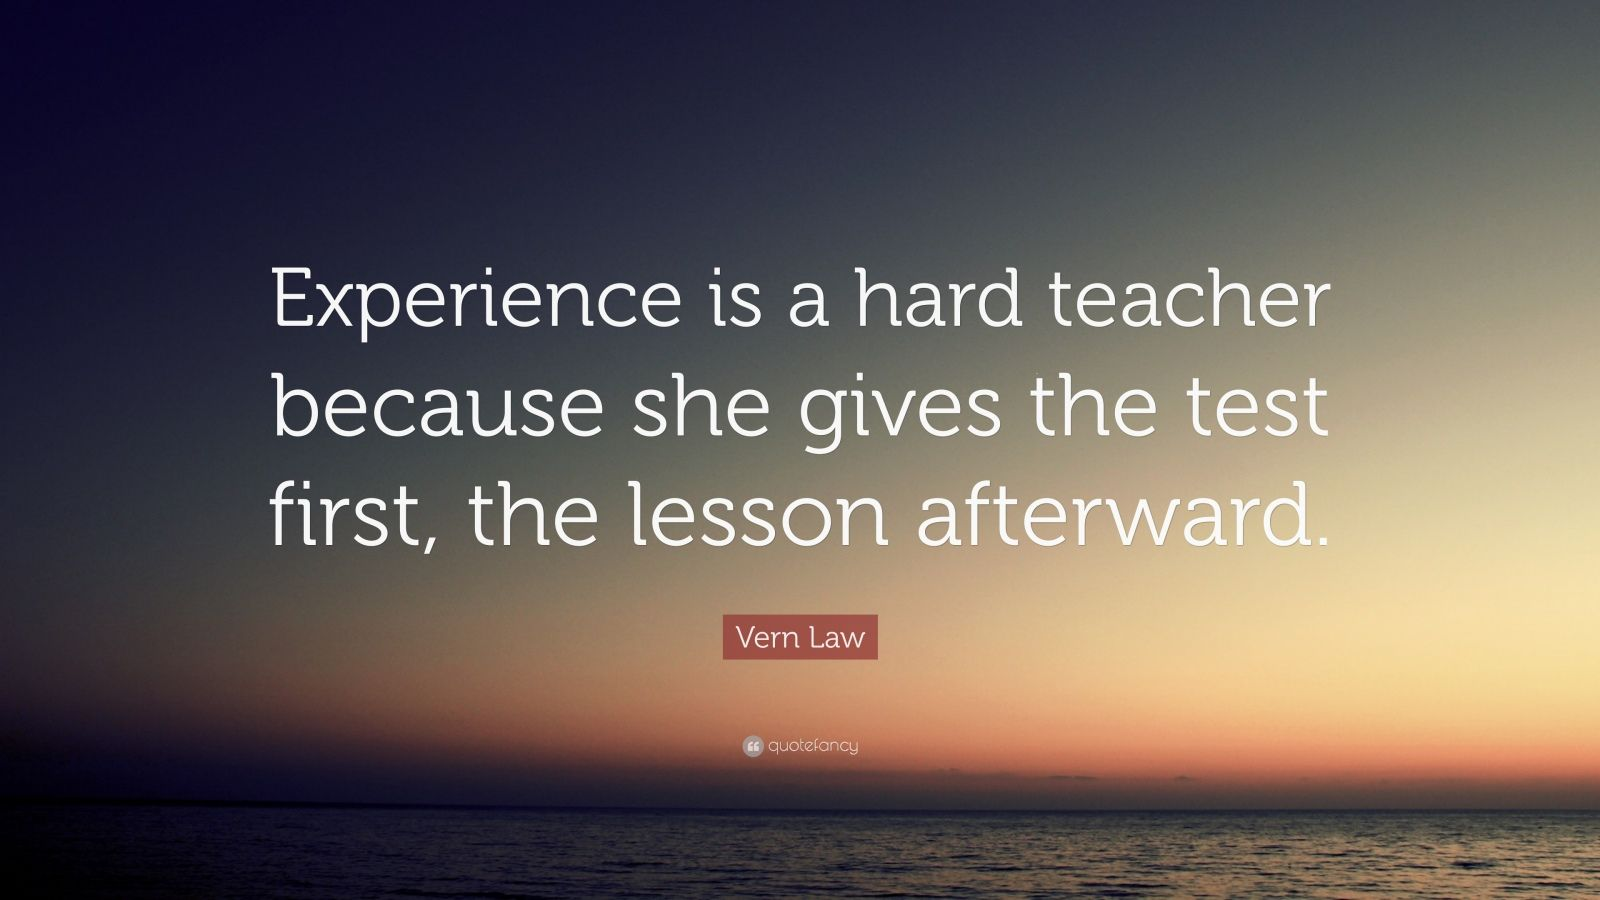 experience is a hard teacher Experience is a hard teacher she gives the test first, the lesson afterward.